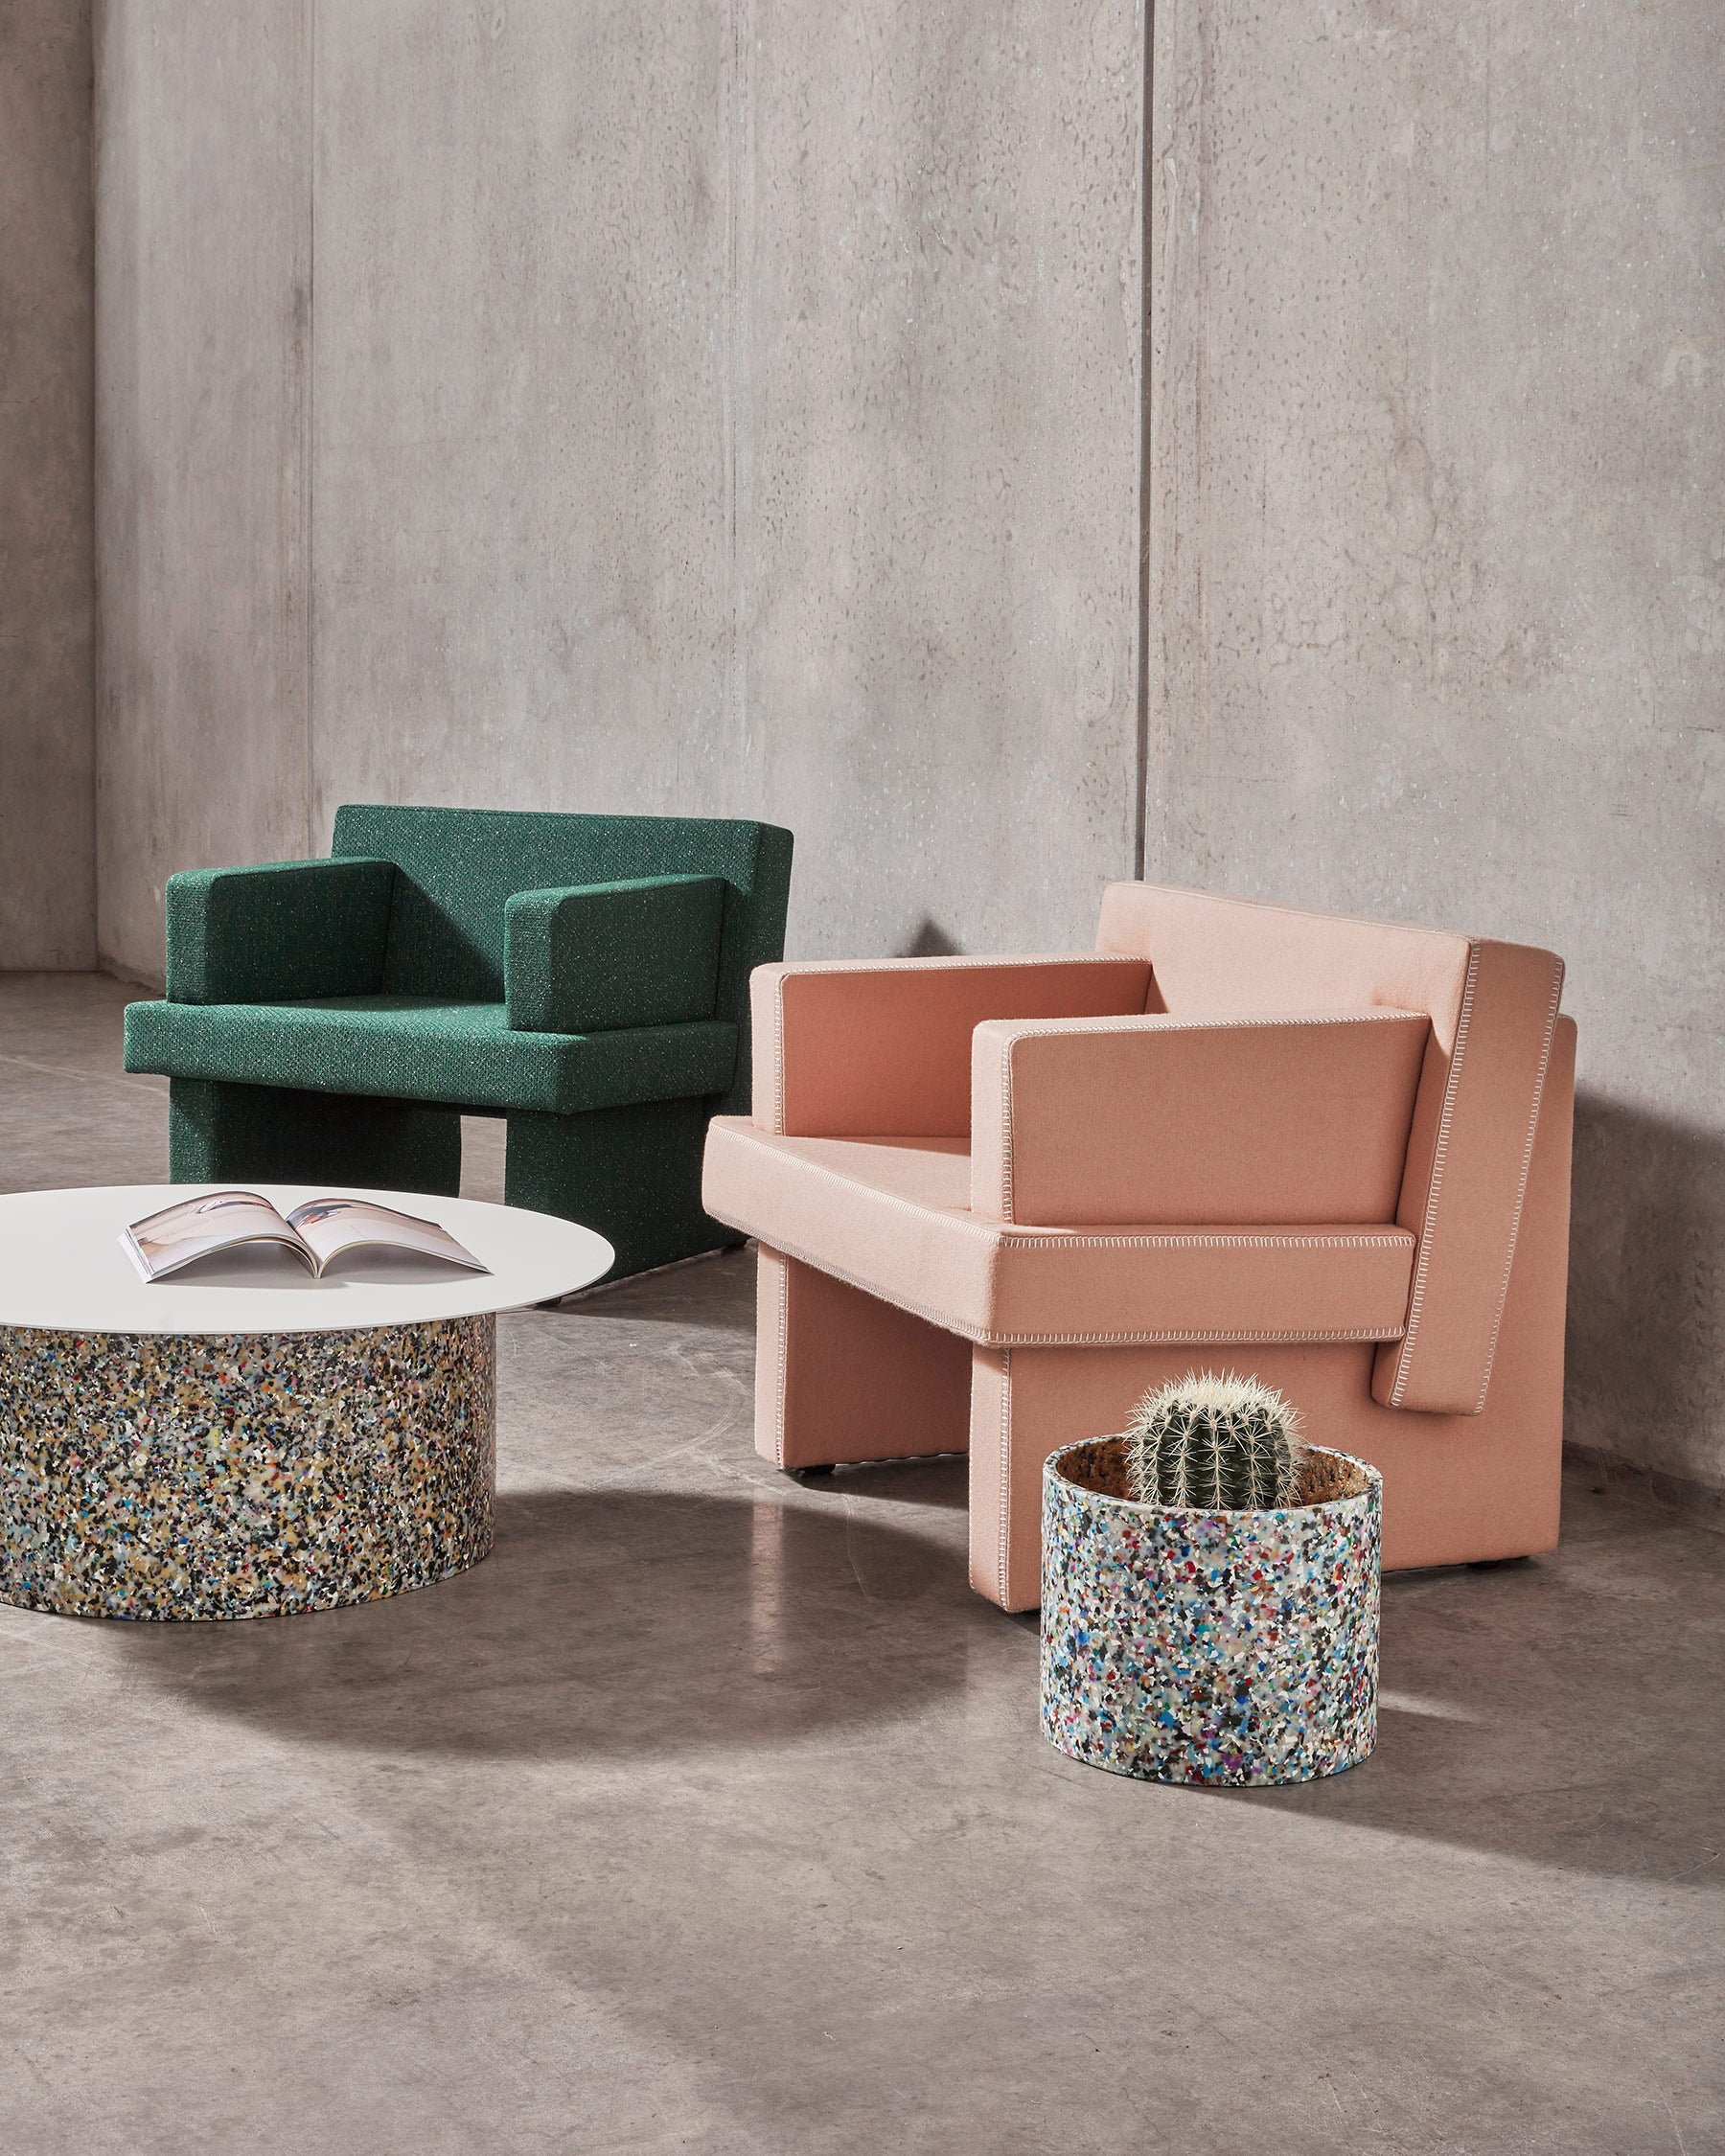 August Armchairs & Lounges | Upholstered Home and Commercial Seating | Gibson Karlo | Sarah Gibson & Nicholas Karlovasitis | DesignByThem